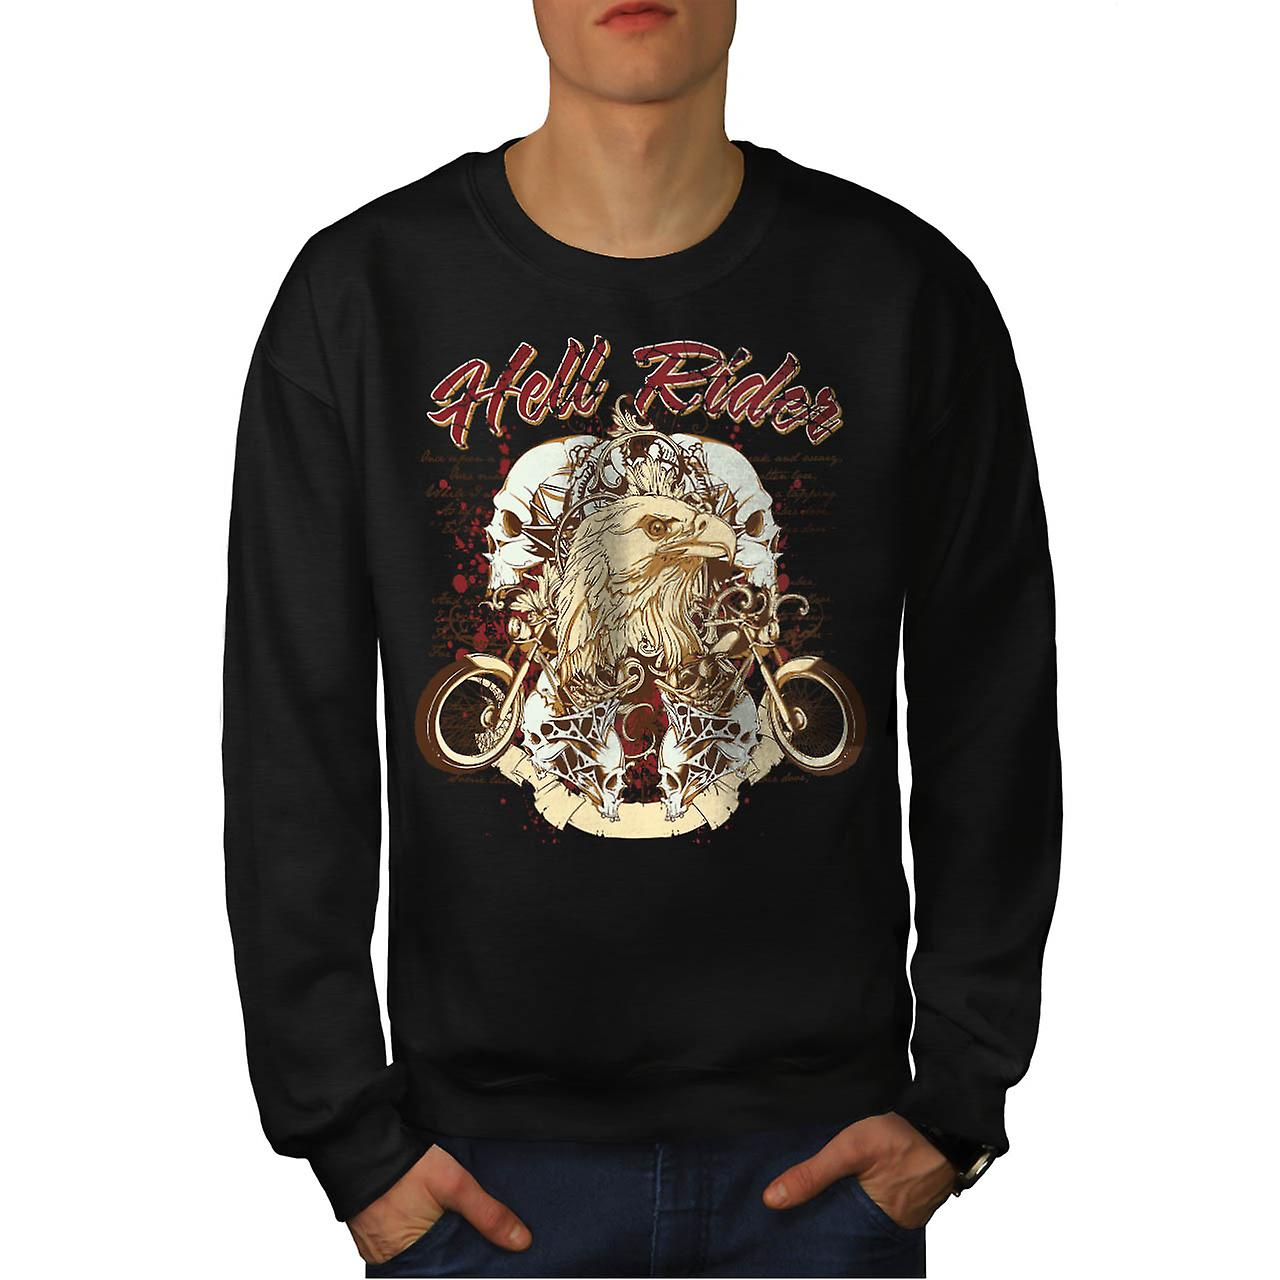 Hell Rider Biker Life Eagle Bike Men Black Sweatshirt | Wellcoda